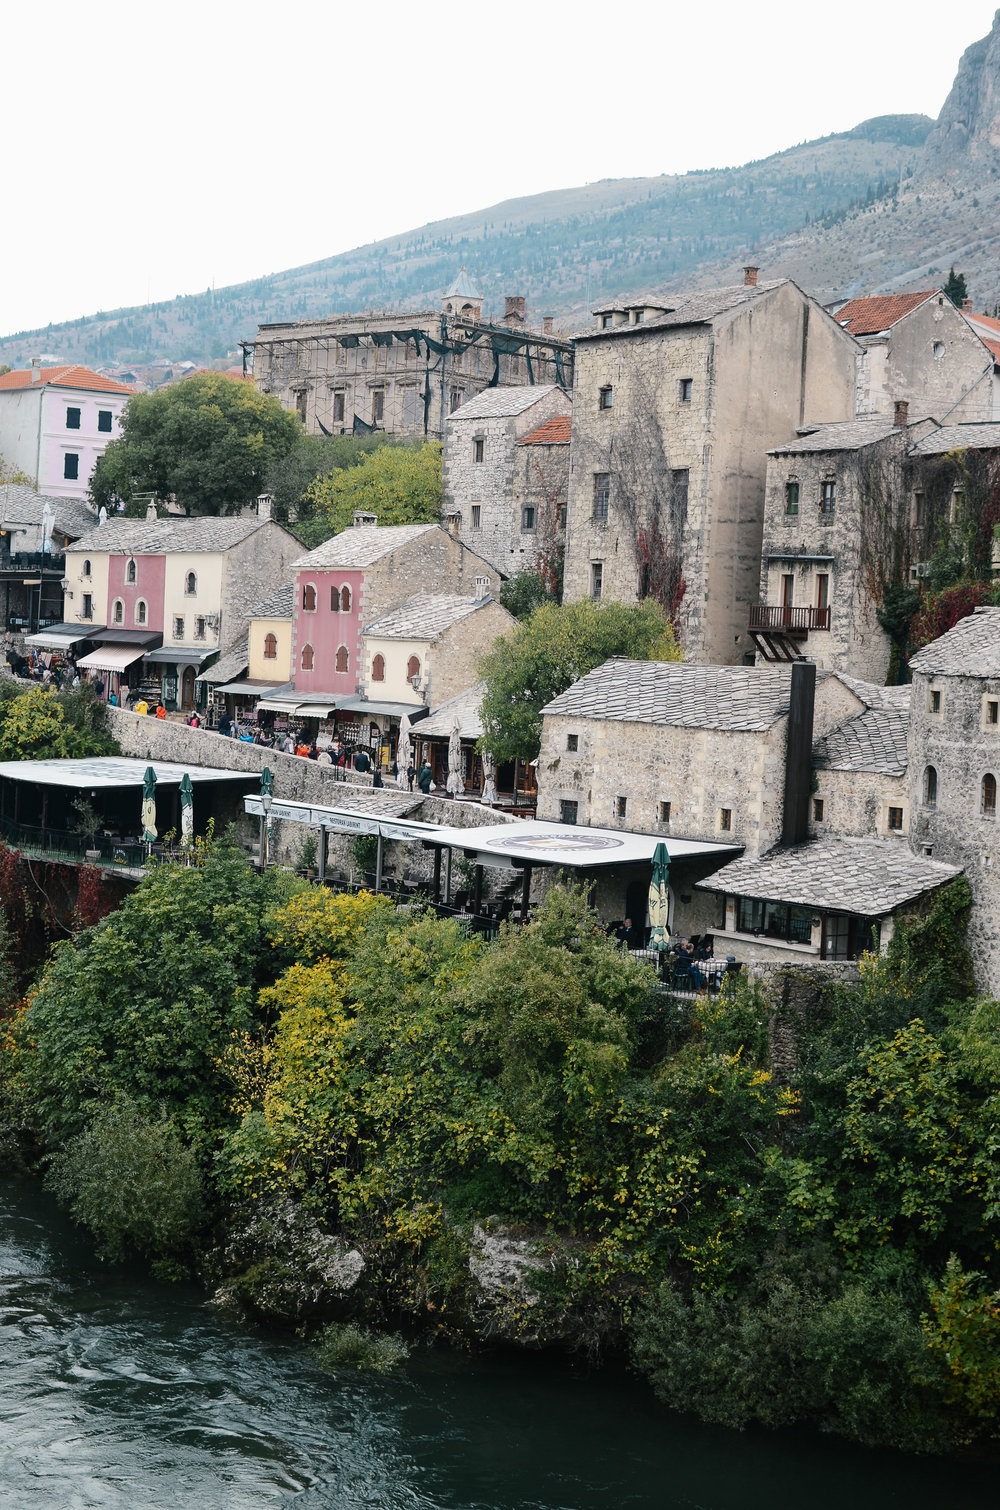 mostar-bosnia-travel-guide-lifeonpine_DSC_3159.jpg